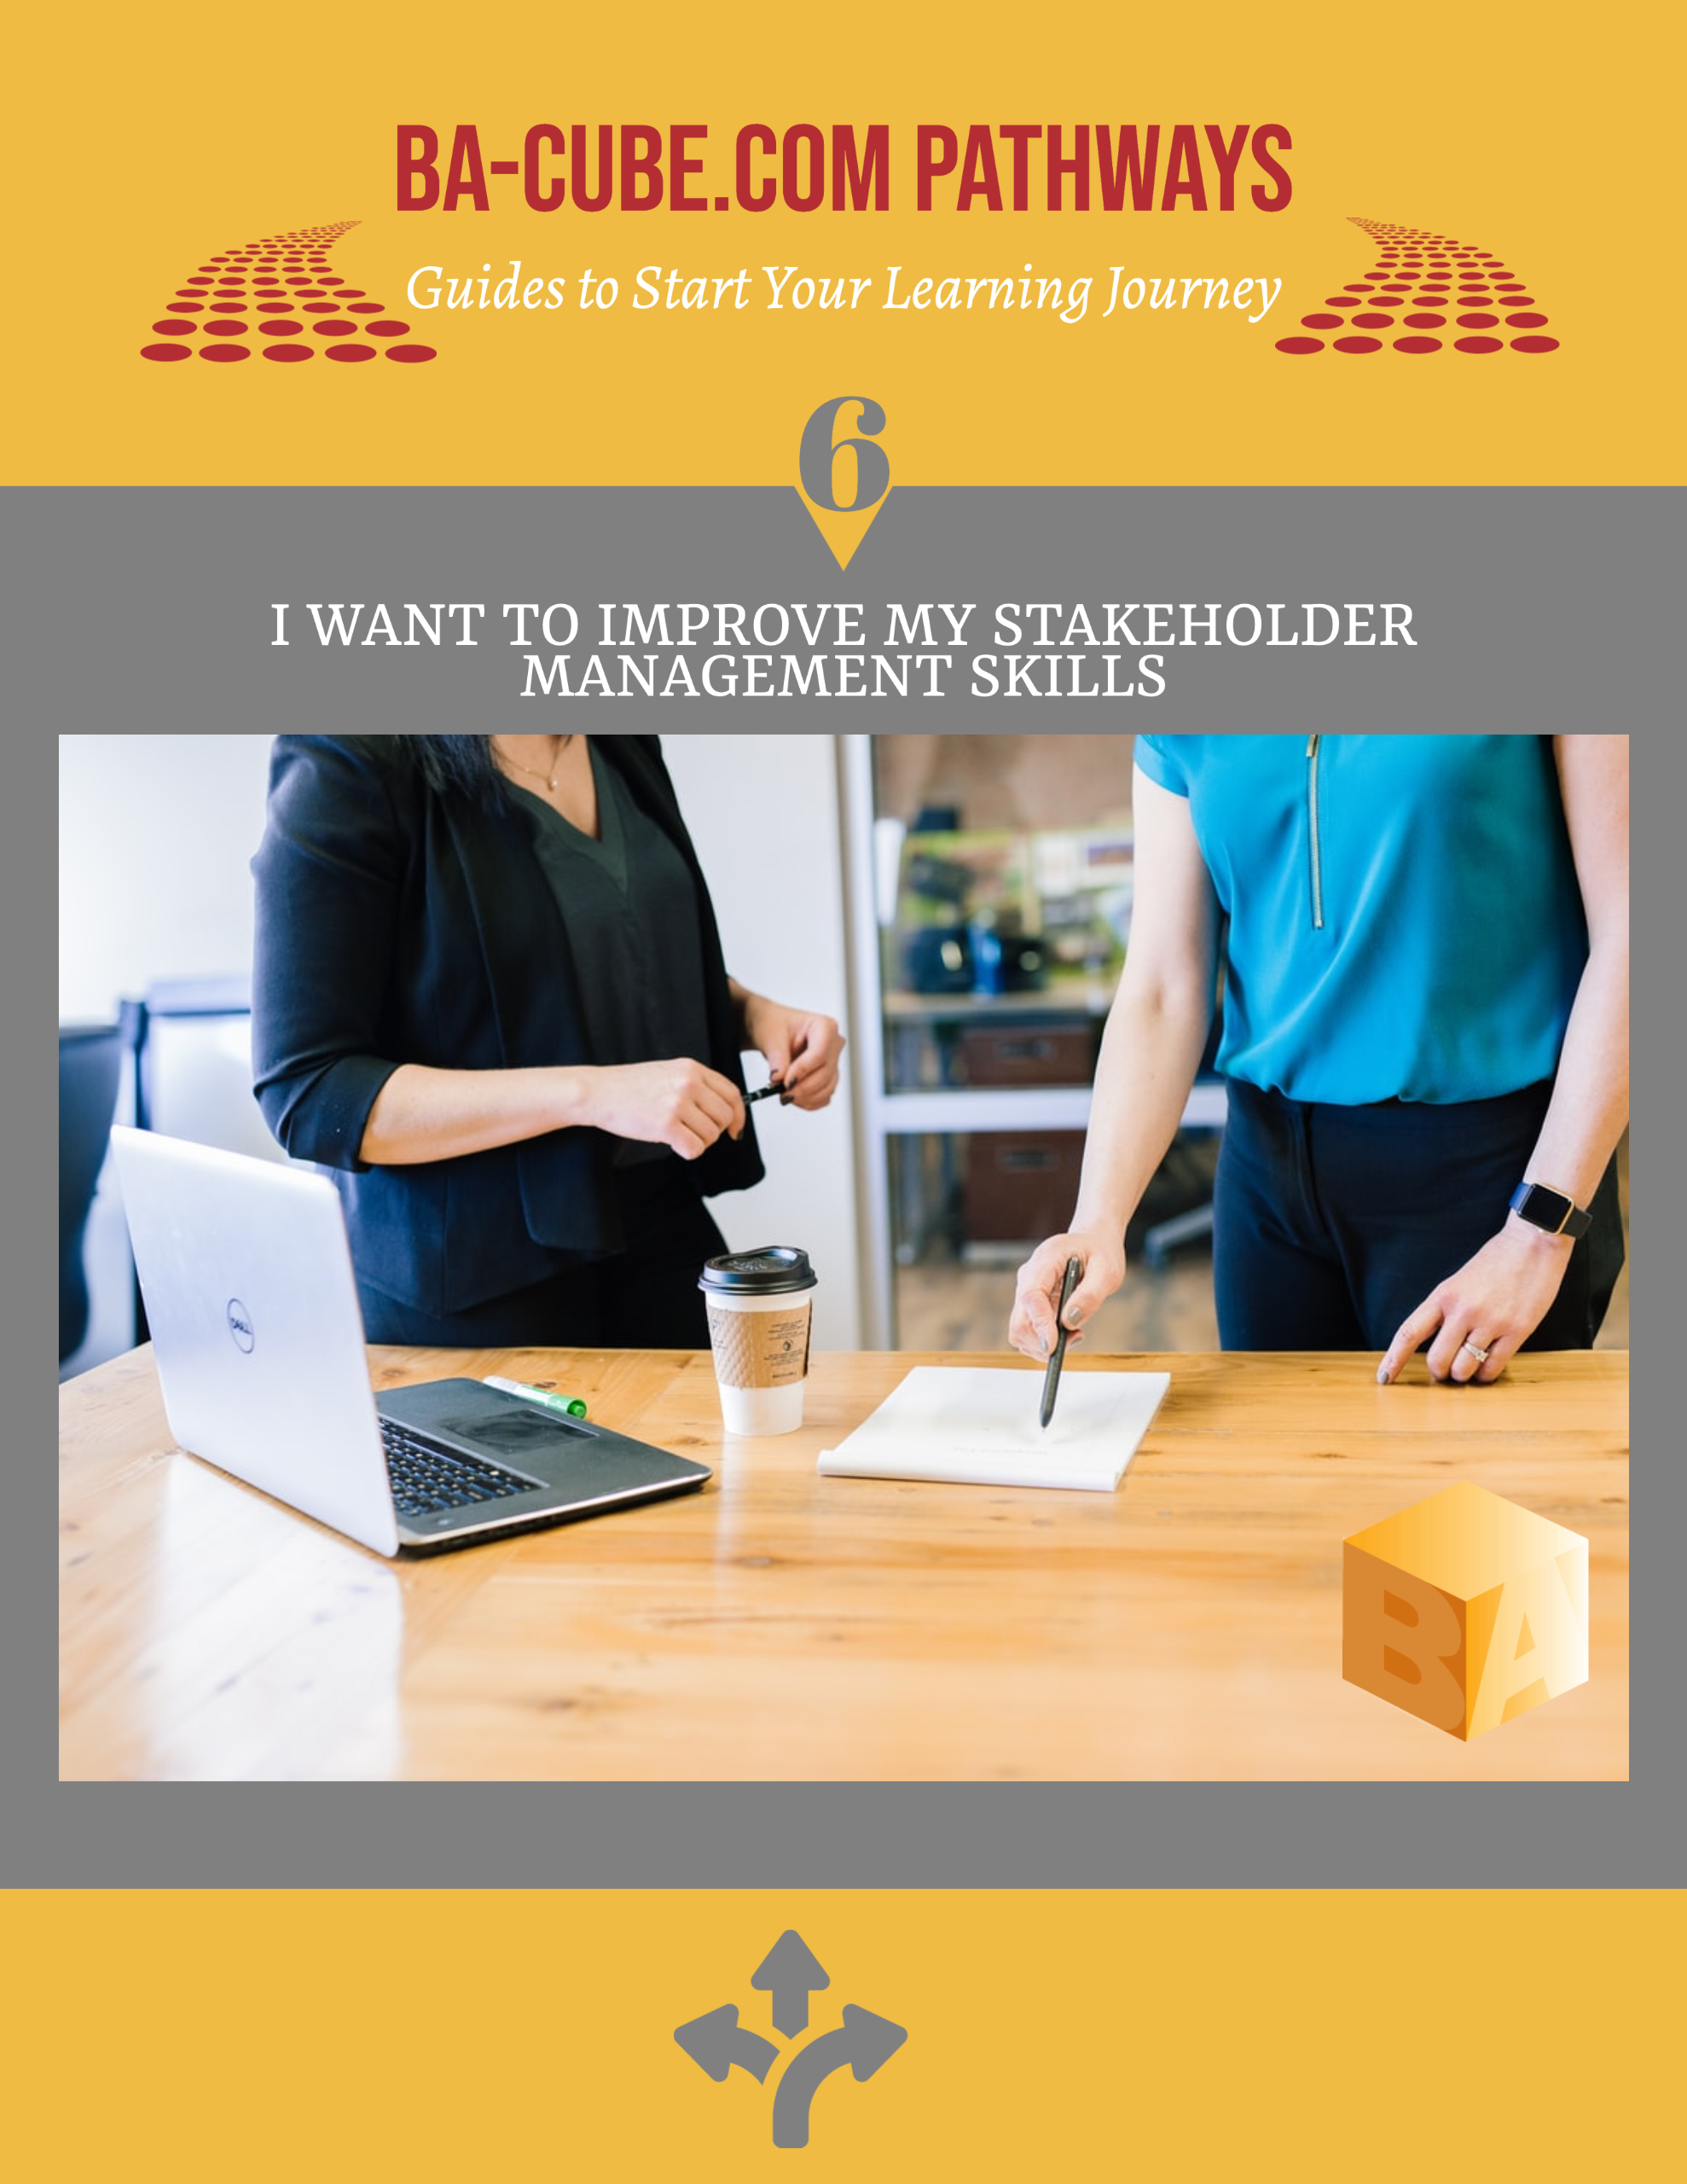 Pathway 6: I Want To Improve My Stakeholder Management